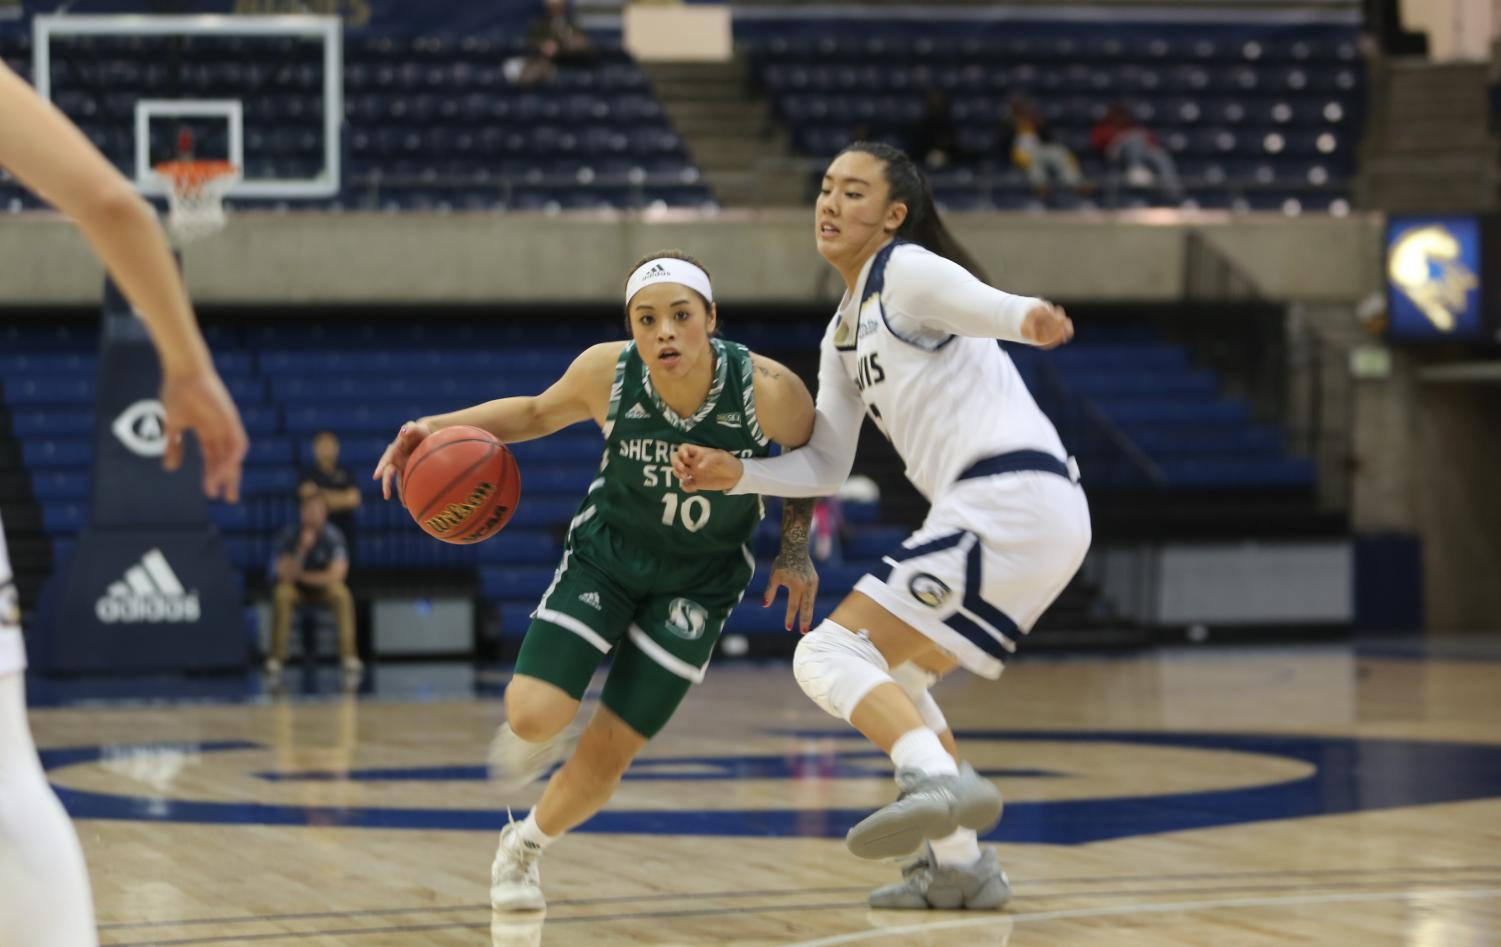 Sac State senior guard Gabi Bade drives to the basket against UC Davis on Tuesday, Nov. 26 at The Pavilion. The Hornets lost to the Aggies 77-75 in double-overtime.